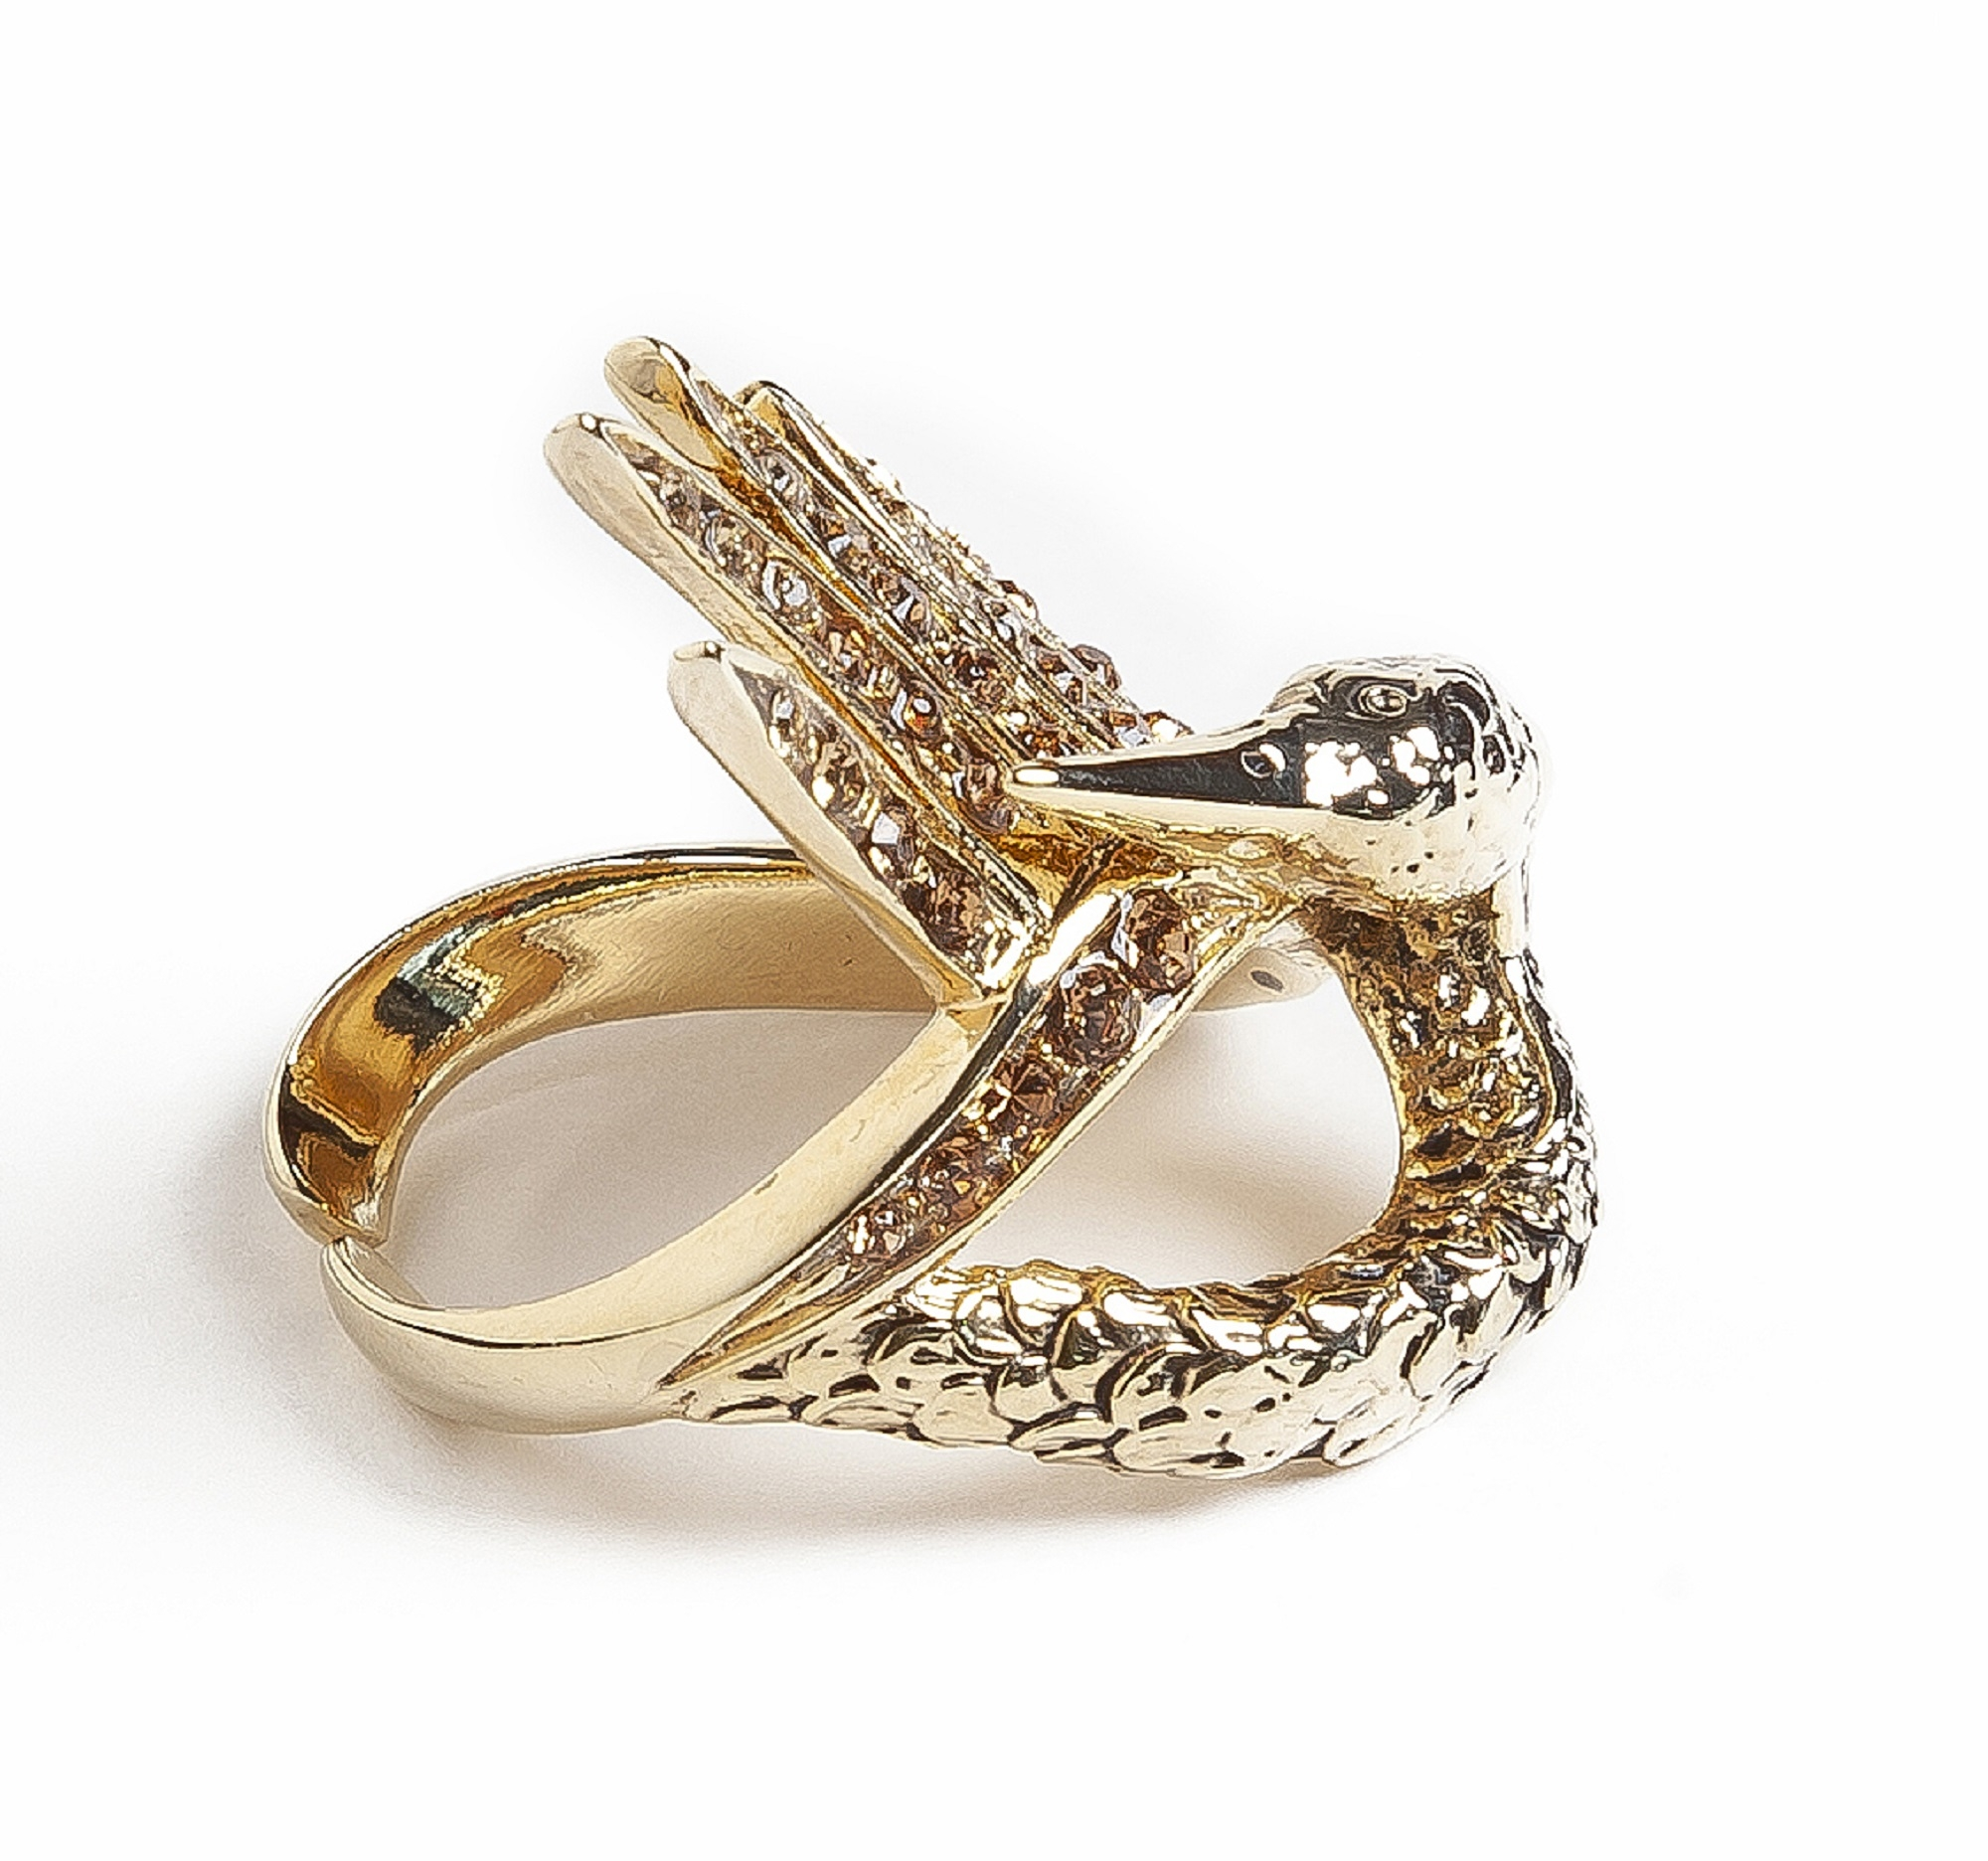 Gold Swan Luxury Ring by Sonia Petroff on curated-crowd.com